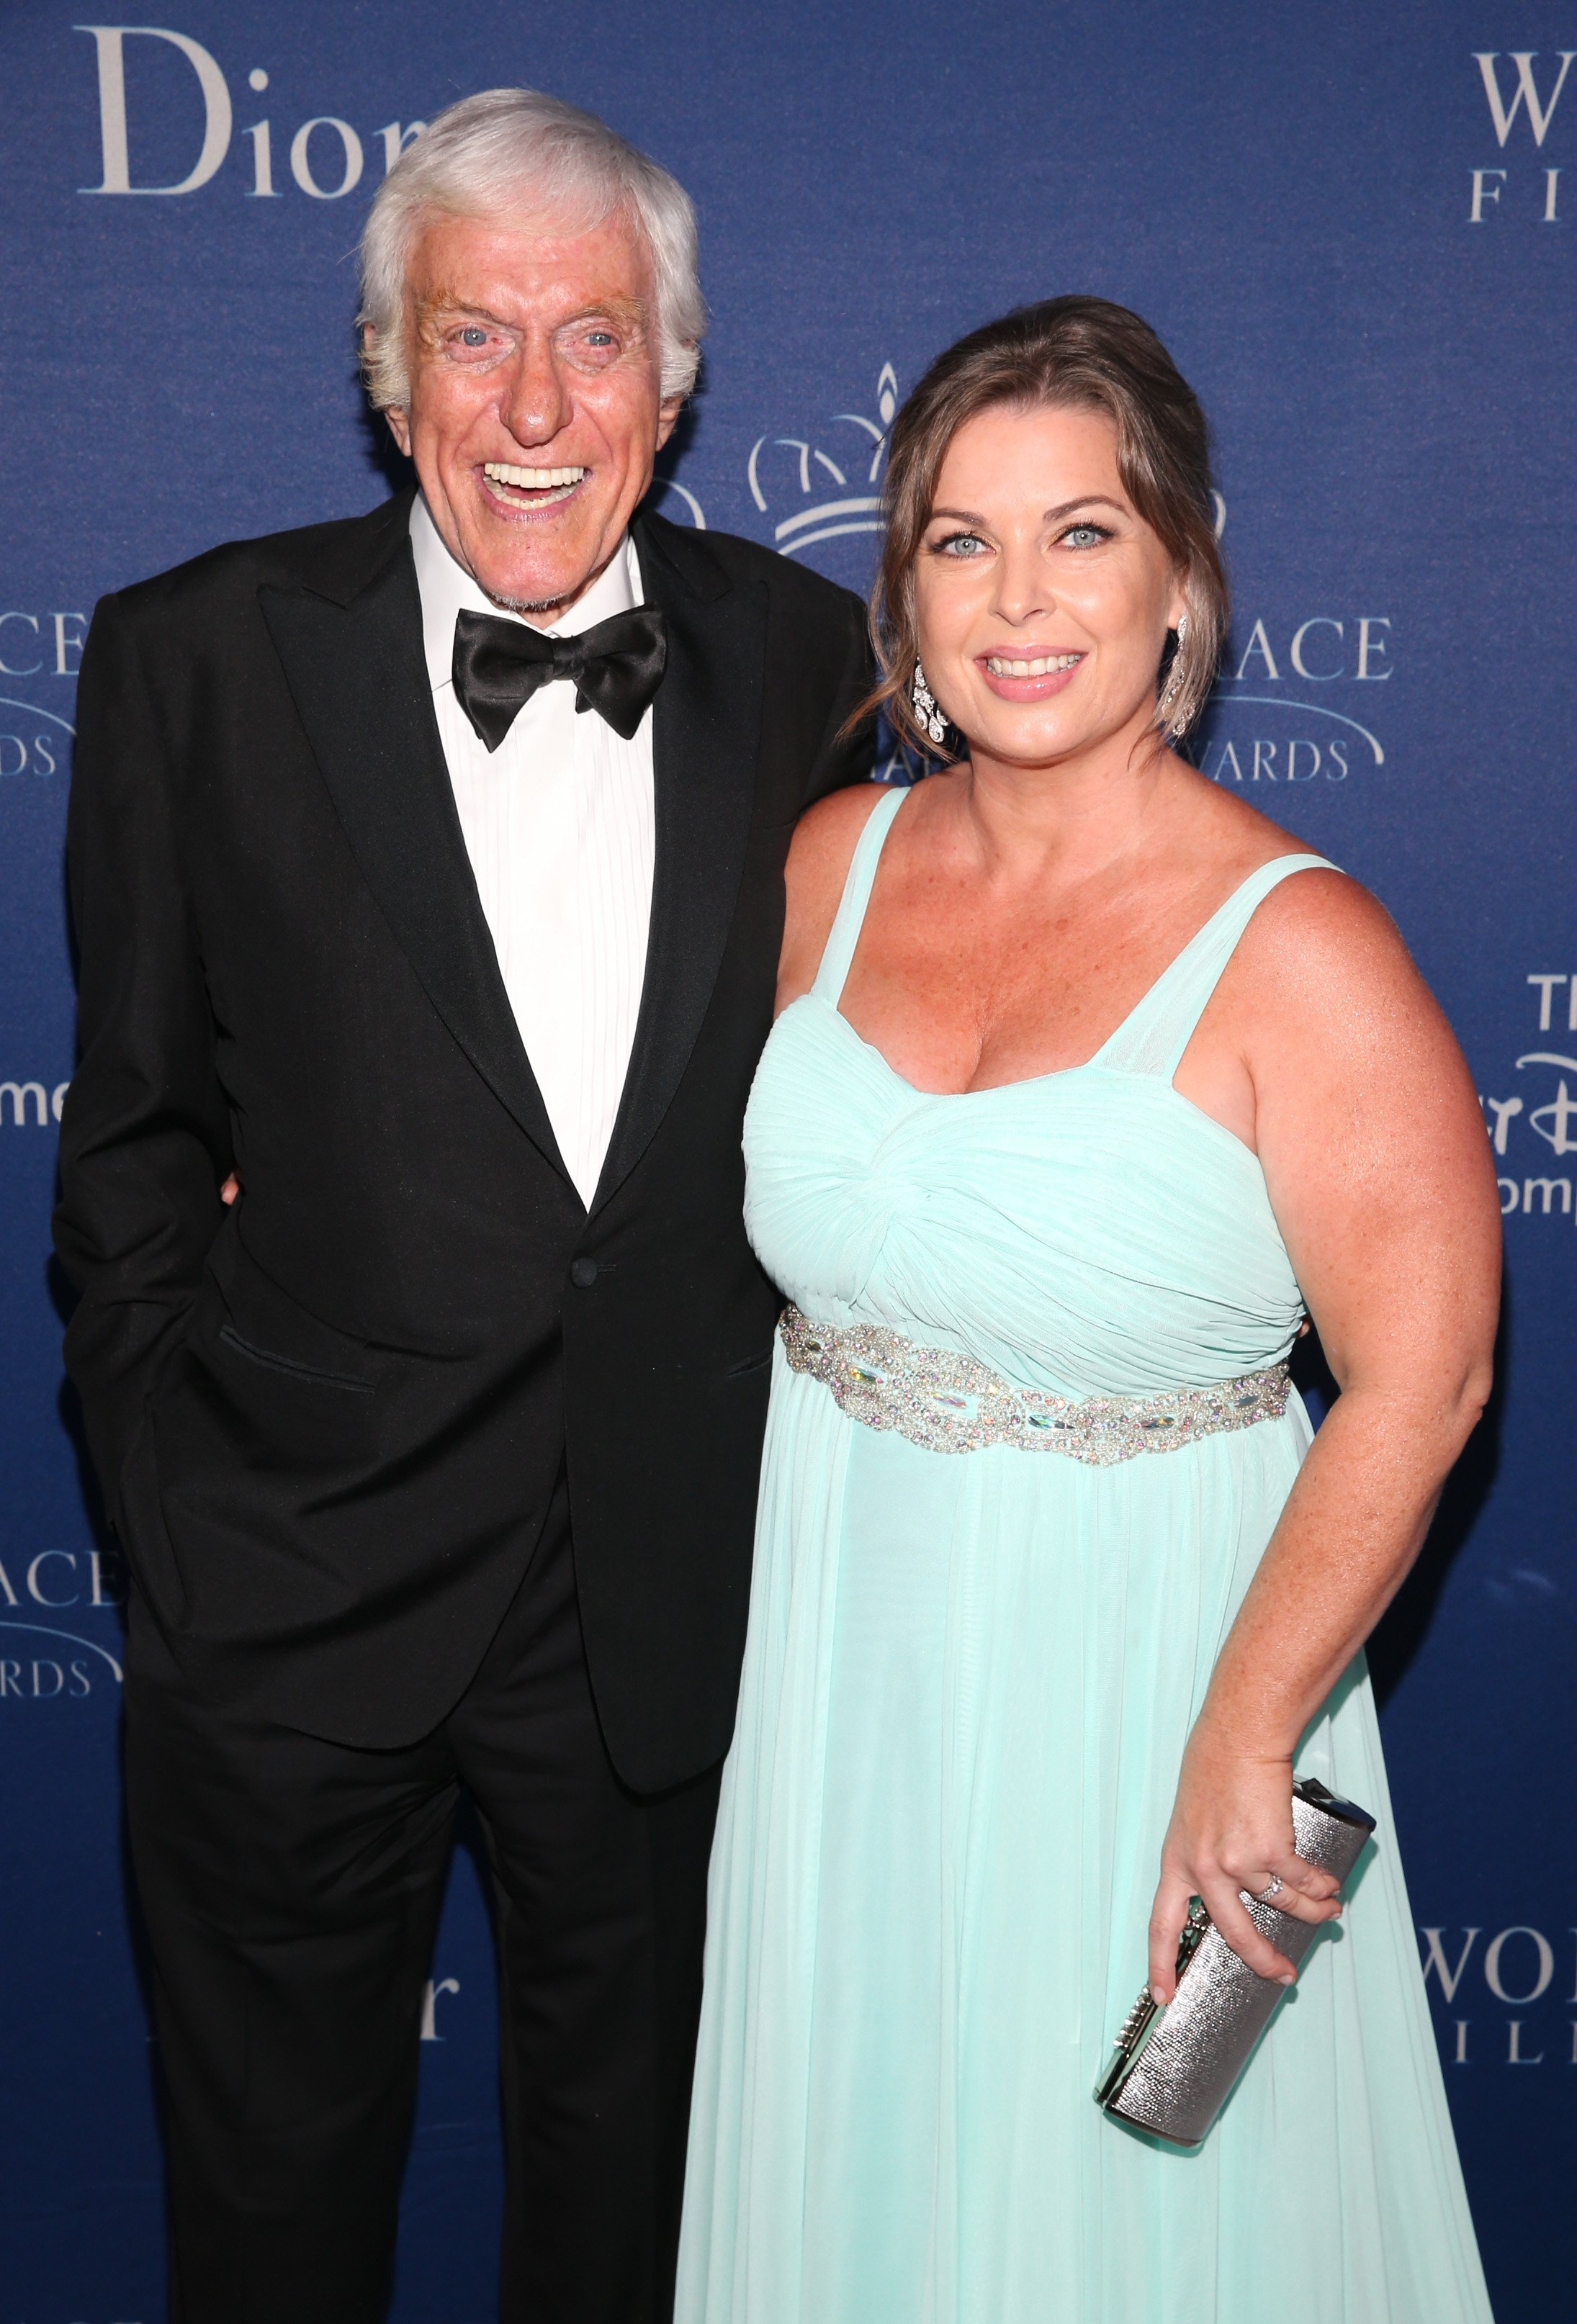 Dick Van Dyke and Arlene Silver attends the Princess Grace Awards Gala in Beverly Hills, California on October 8, 2014 | Photo: Getty Images